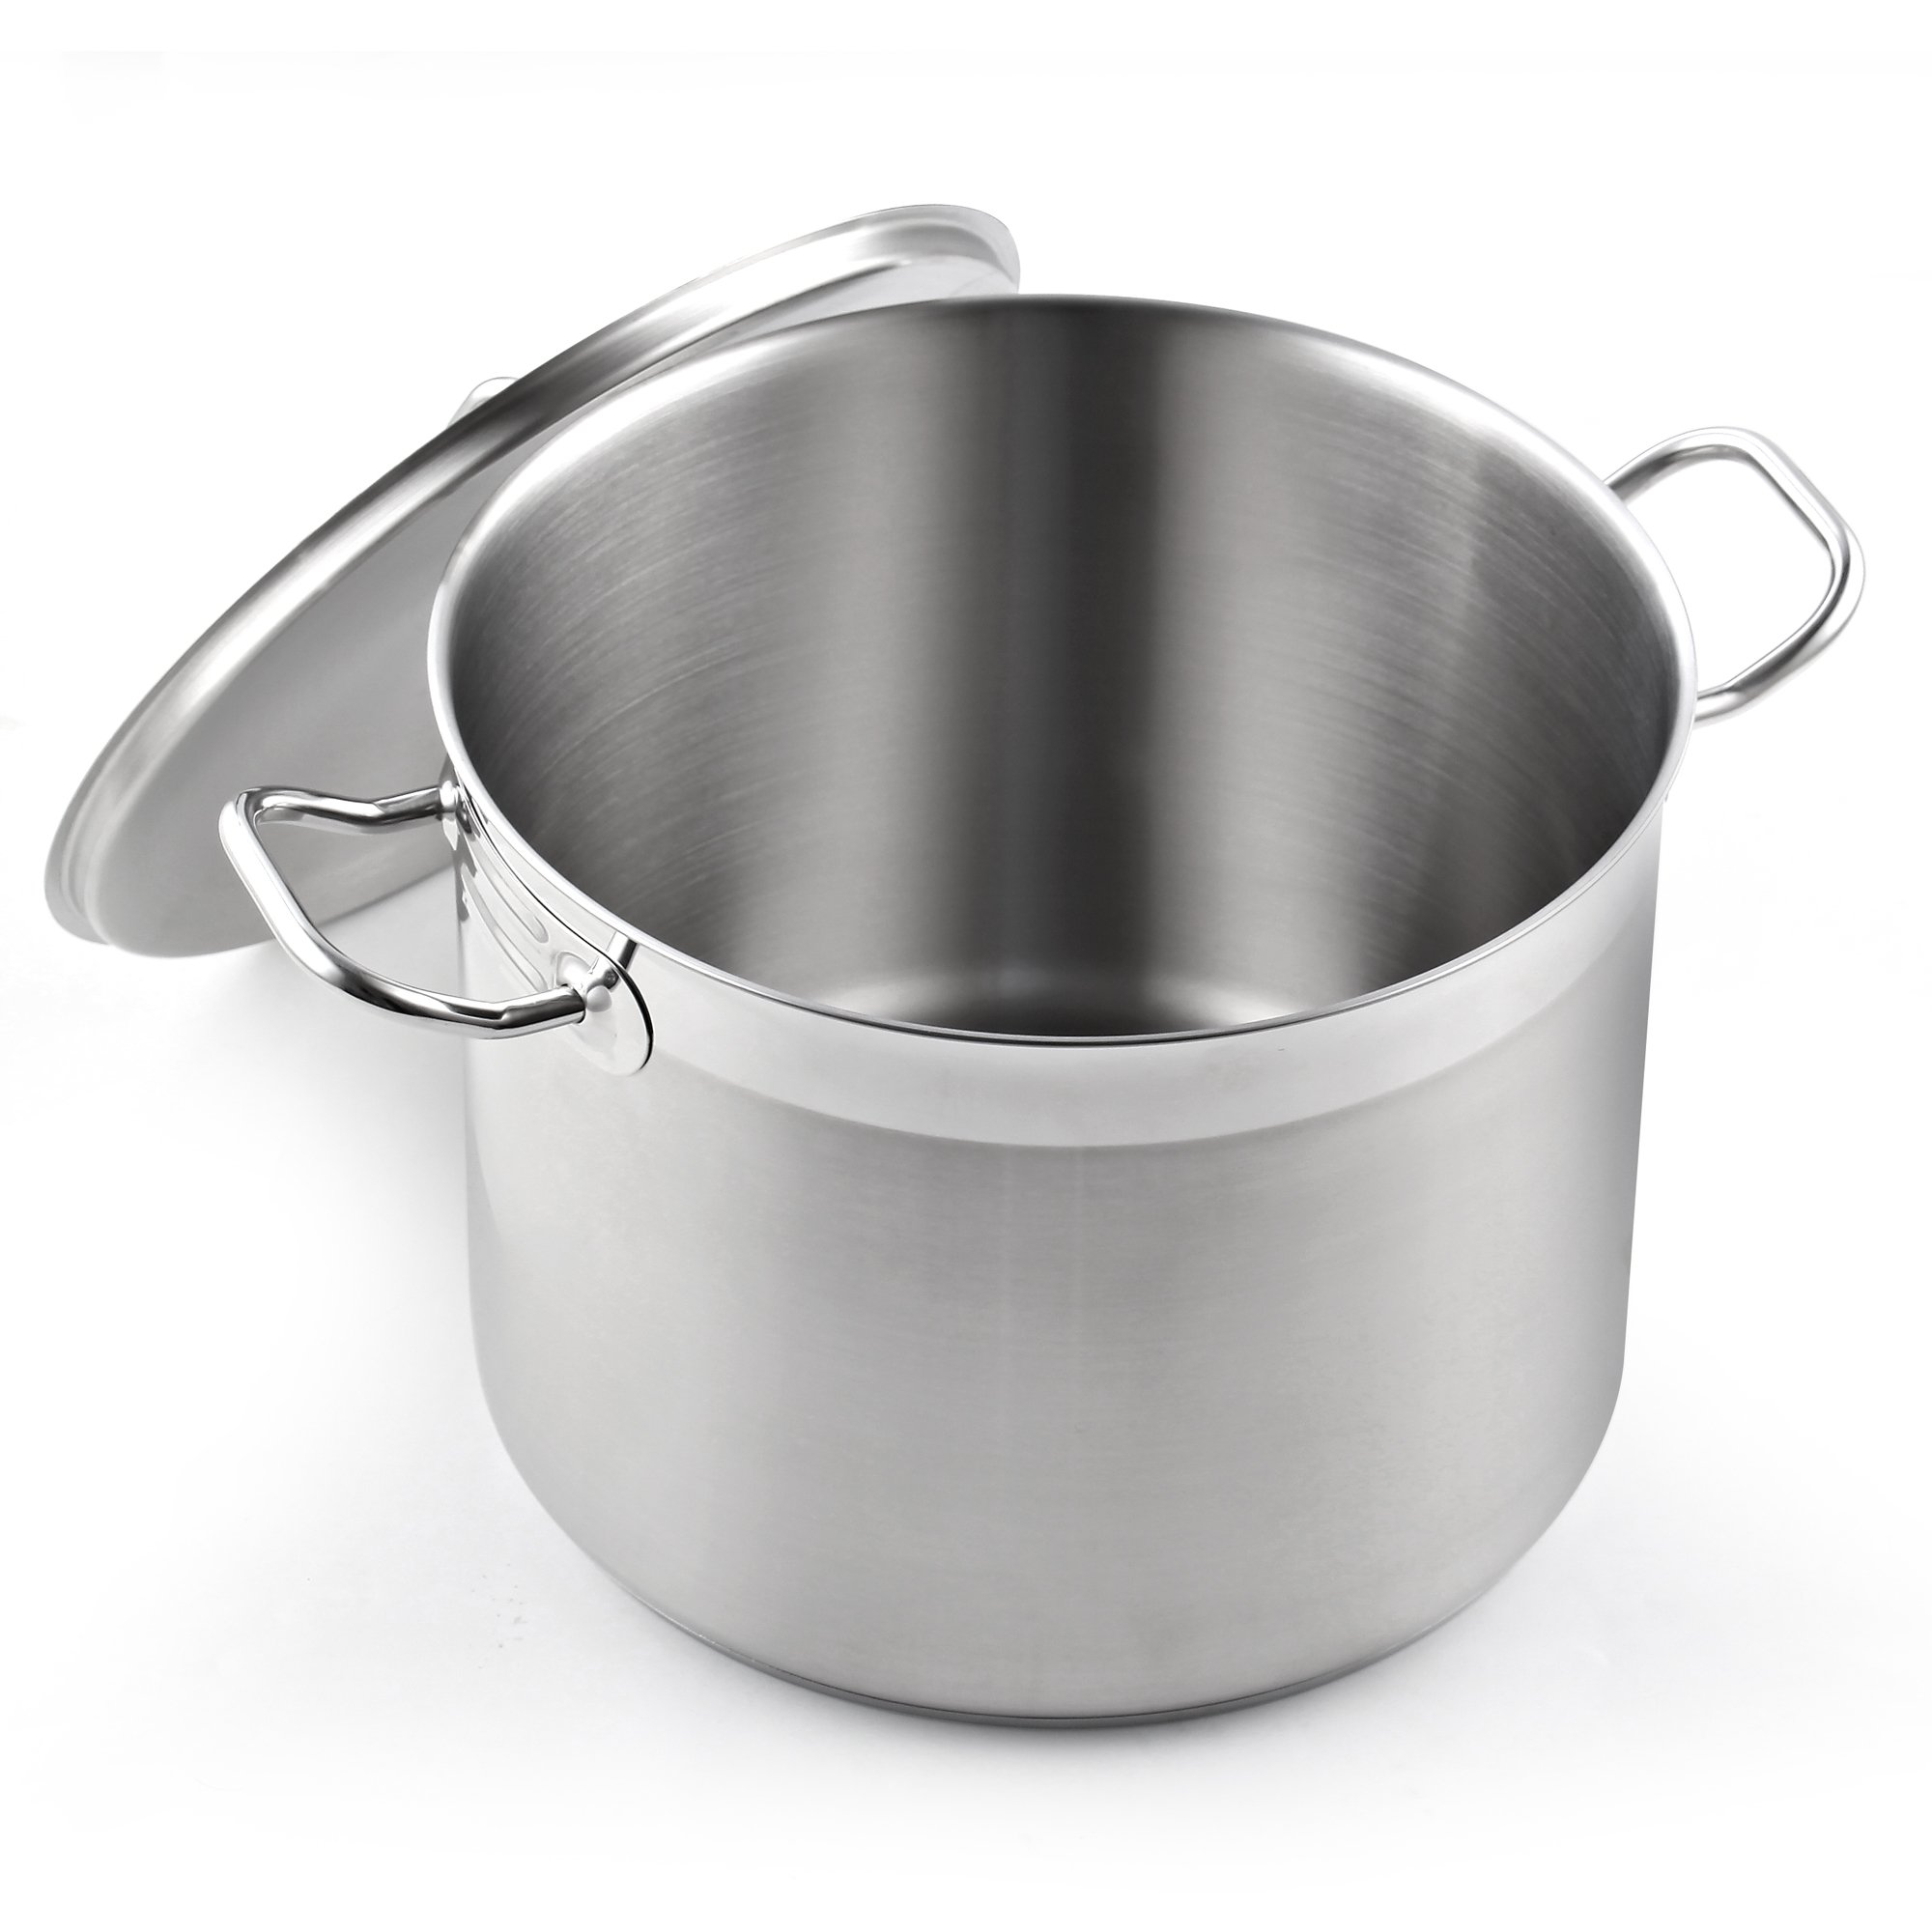 Cooks Standard NC 00330 stockpot Stainless